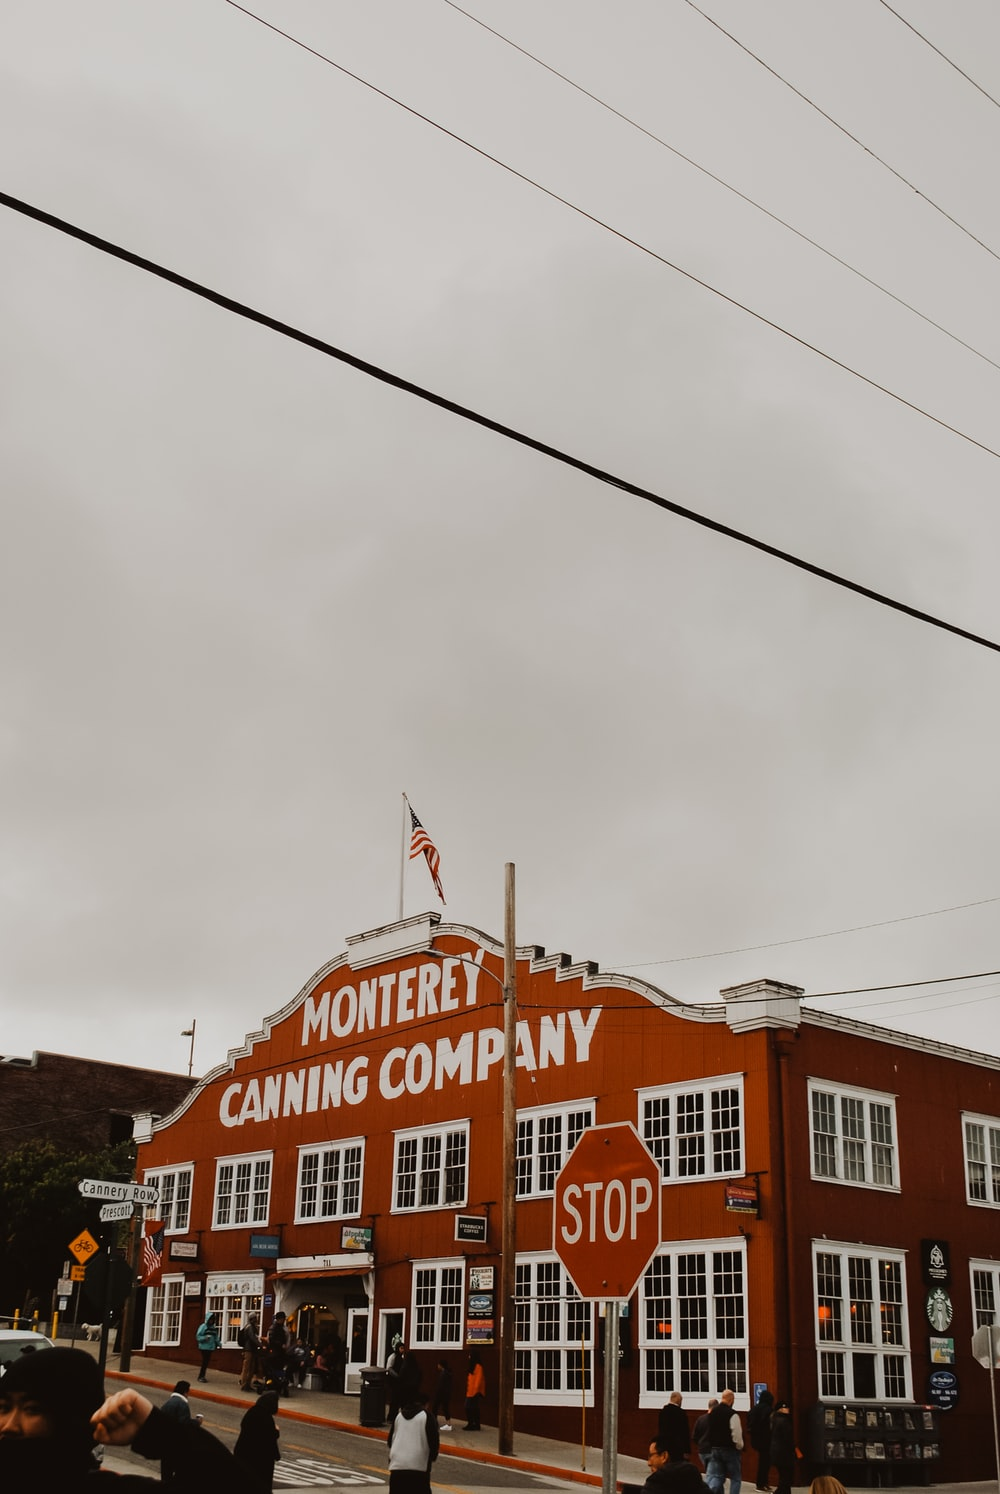 people walking near Monterey canning company building during daytime